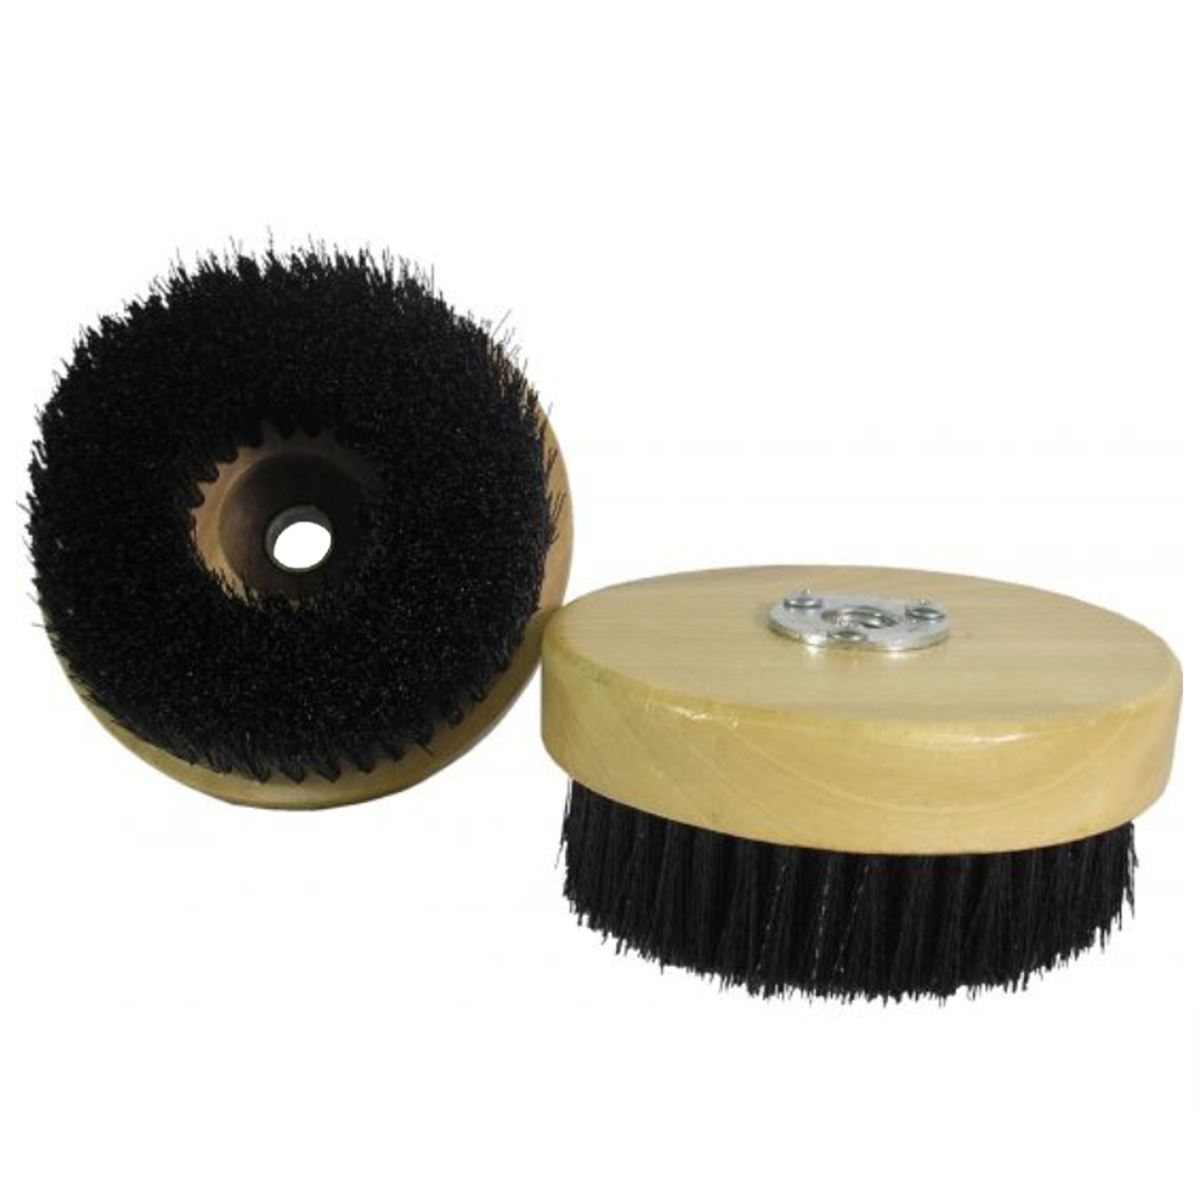 Rotary Direct Mount Upholstery Brush Professional